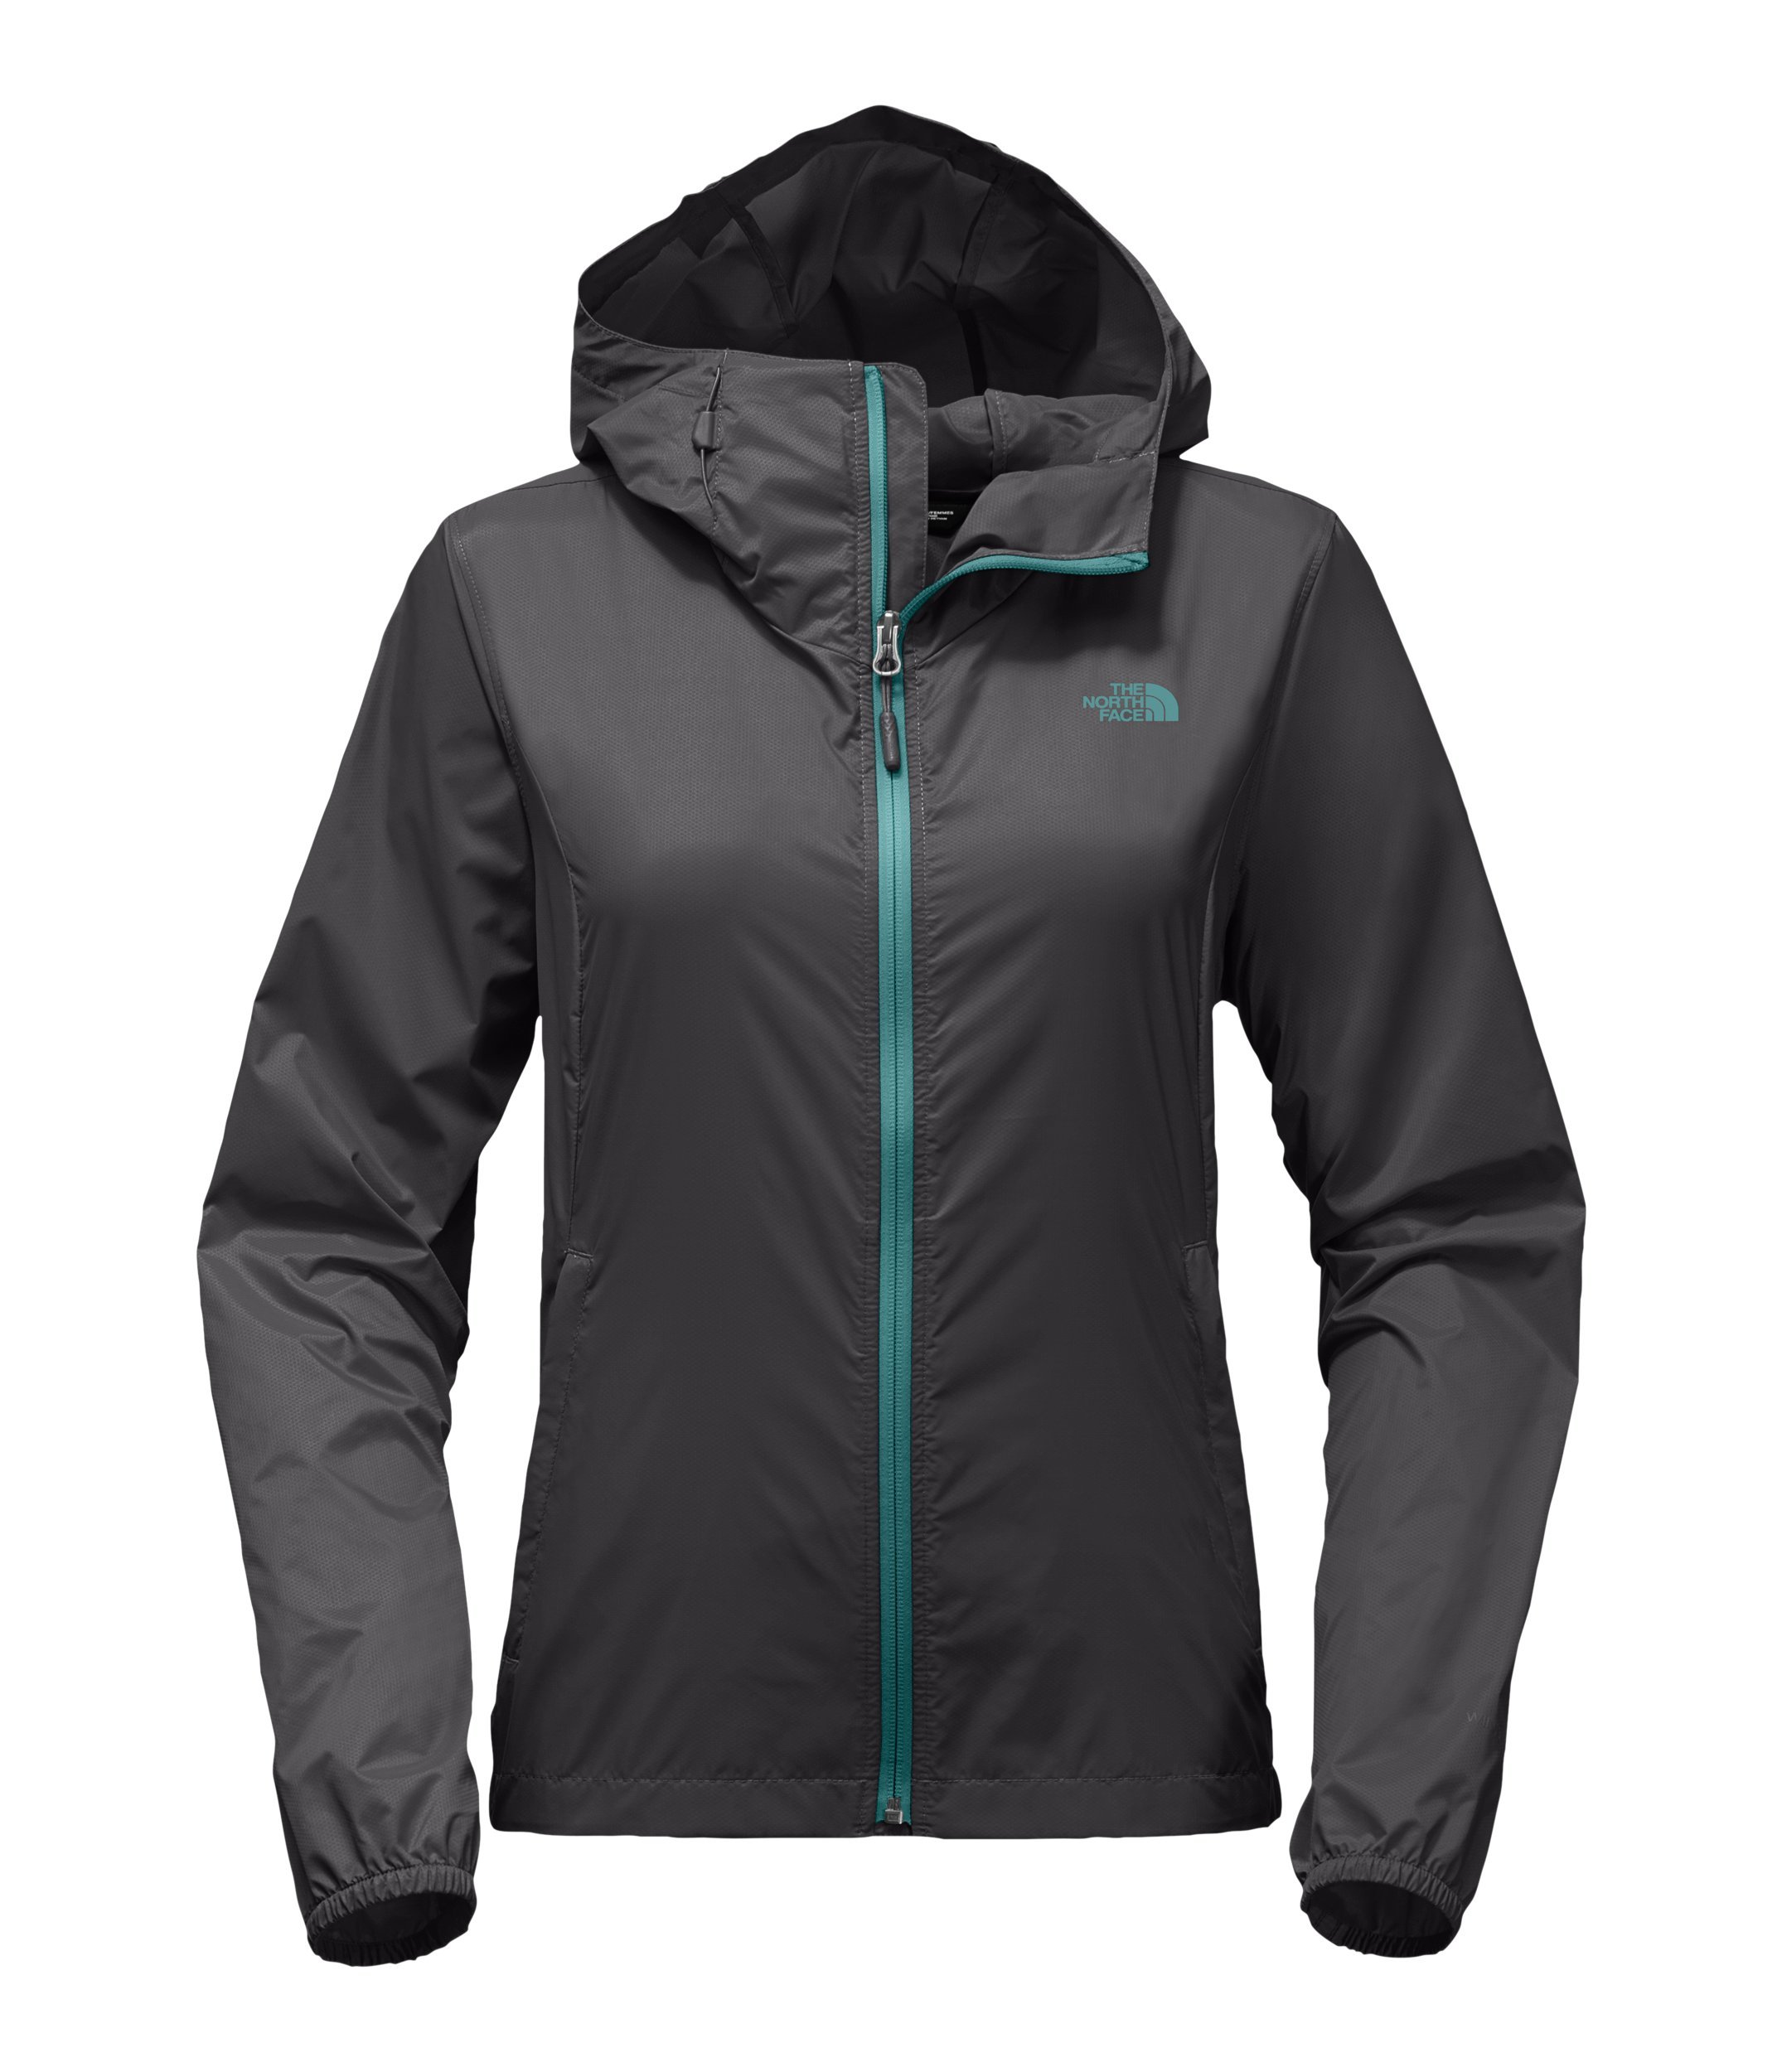 The North Face Women's Cyclone 2 Hoodie - Graphite Grey - XL